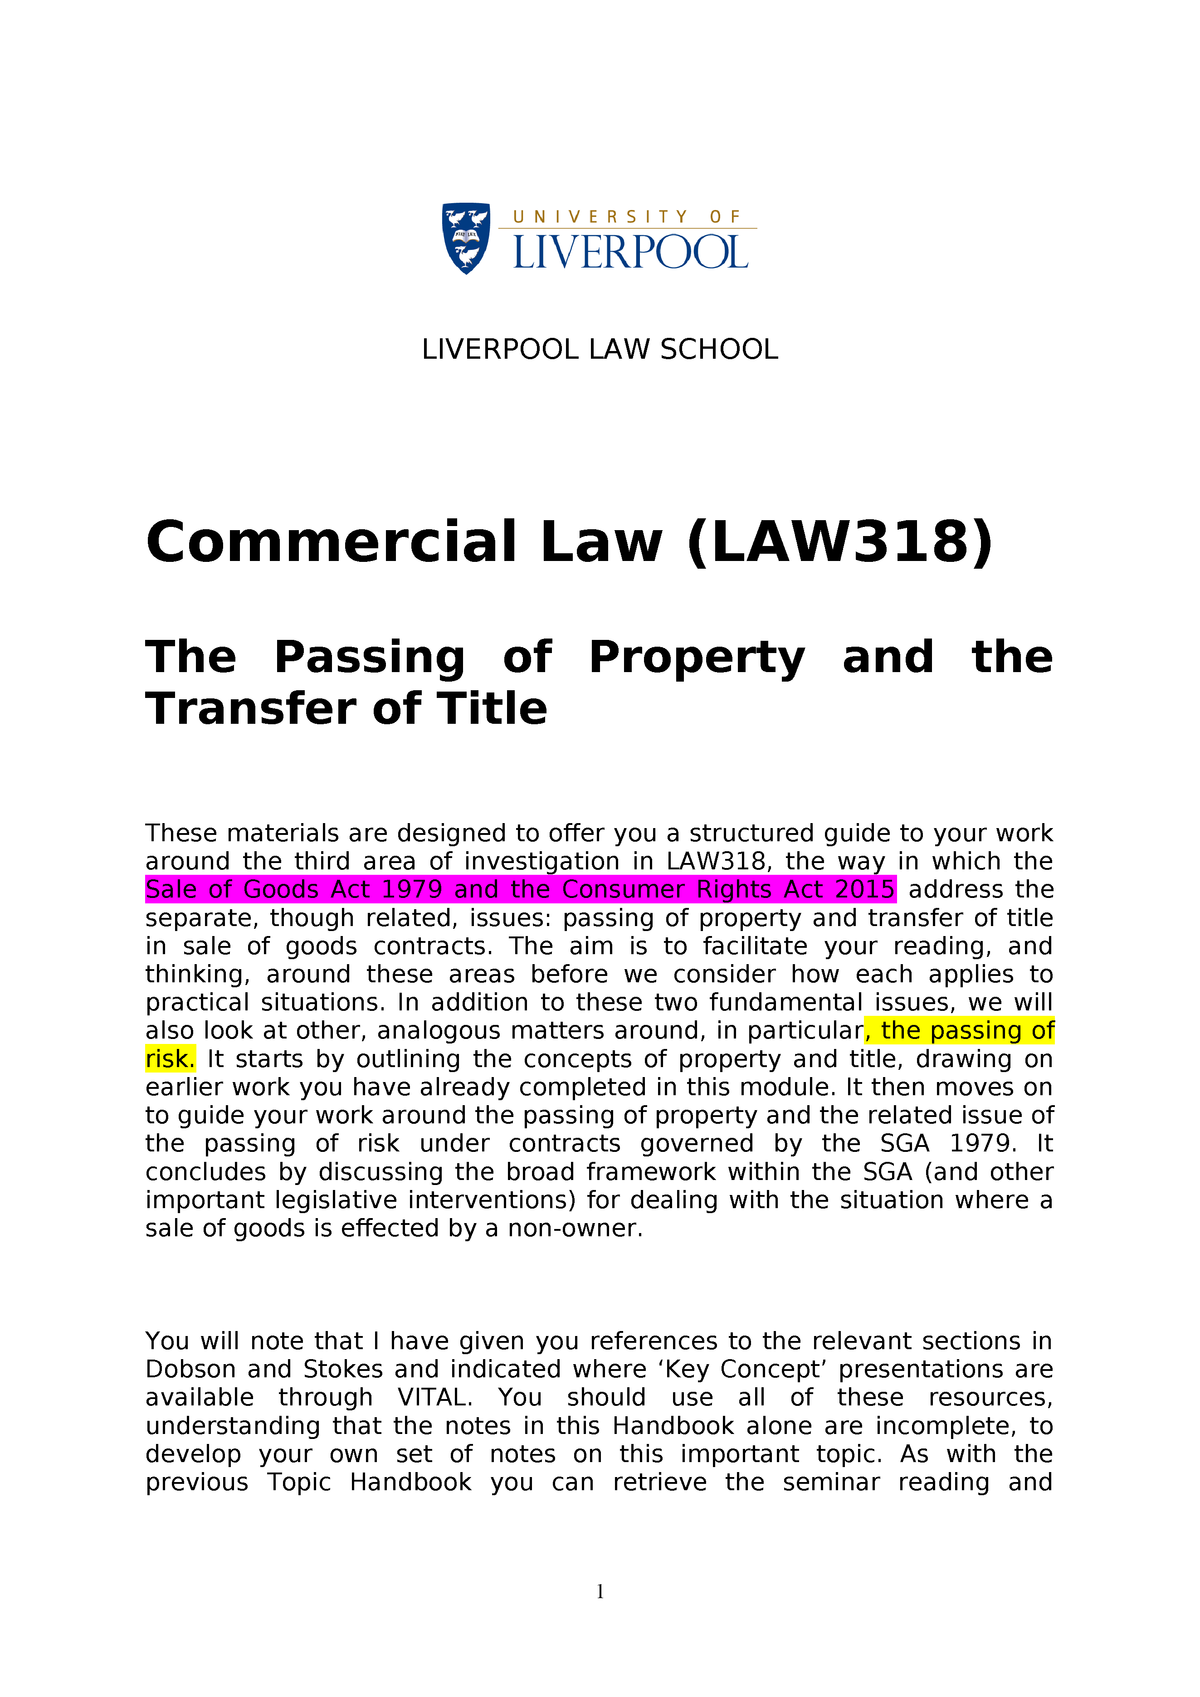 The Passing of Property and the Transfer of Title - Law M100